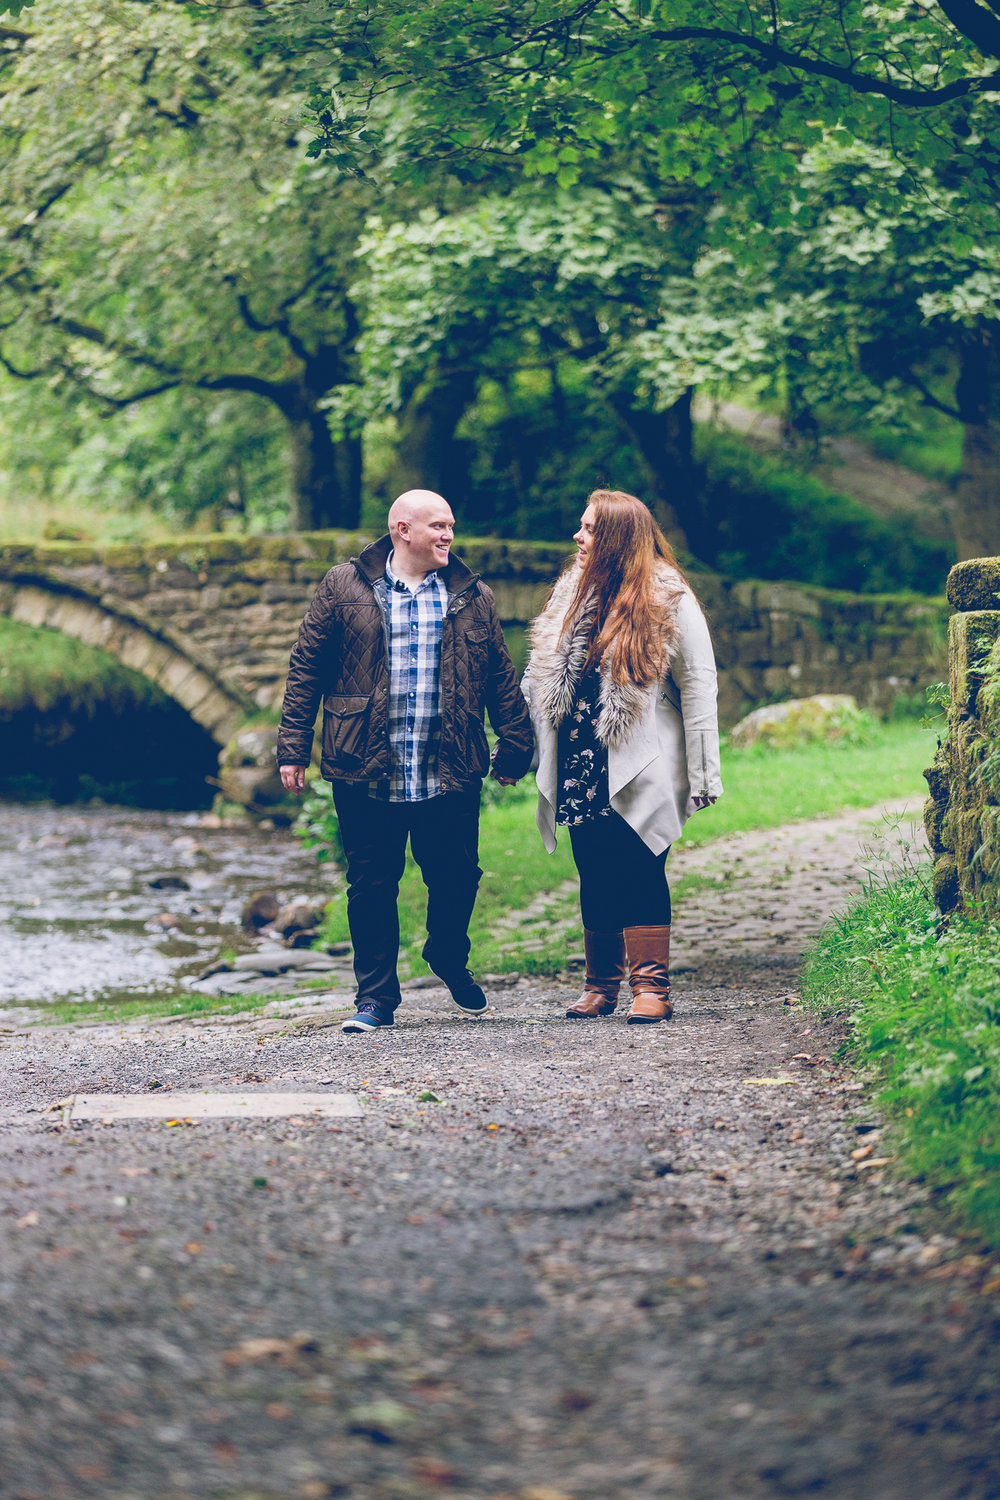 0034-Melissa & Adam-Engagement-Wycoller Country Park-Lancashire-photo.jpg